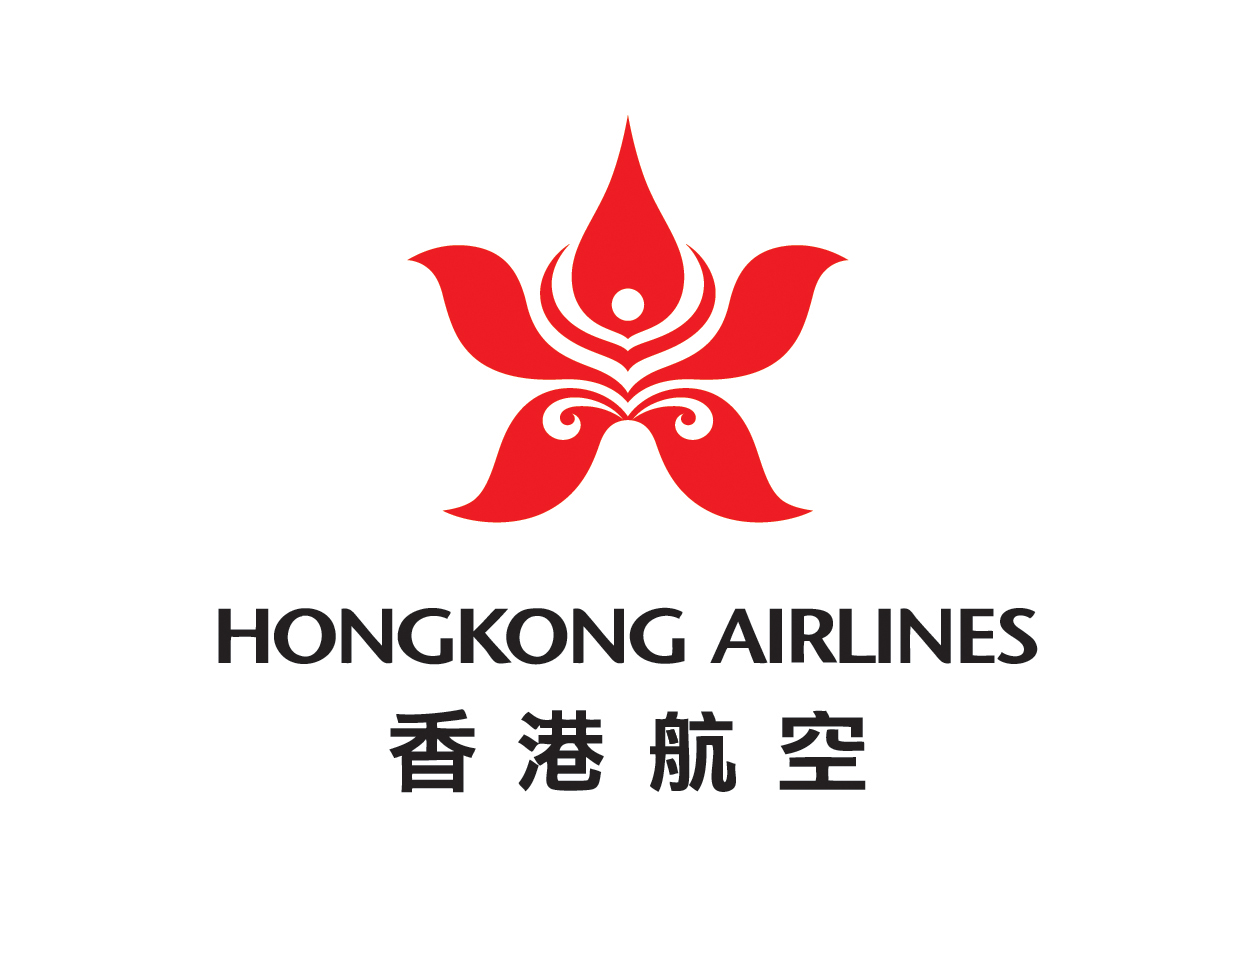 We are delighted to announce that we have partnered with Hong Kong Airlines  (HKA) to provide premium content services to the airlineu0027s award-winning PlusPng.com  - Hong Kong Airlines PNG